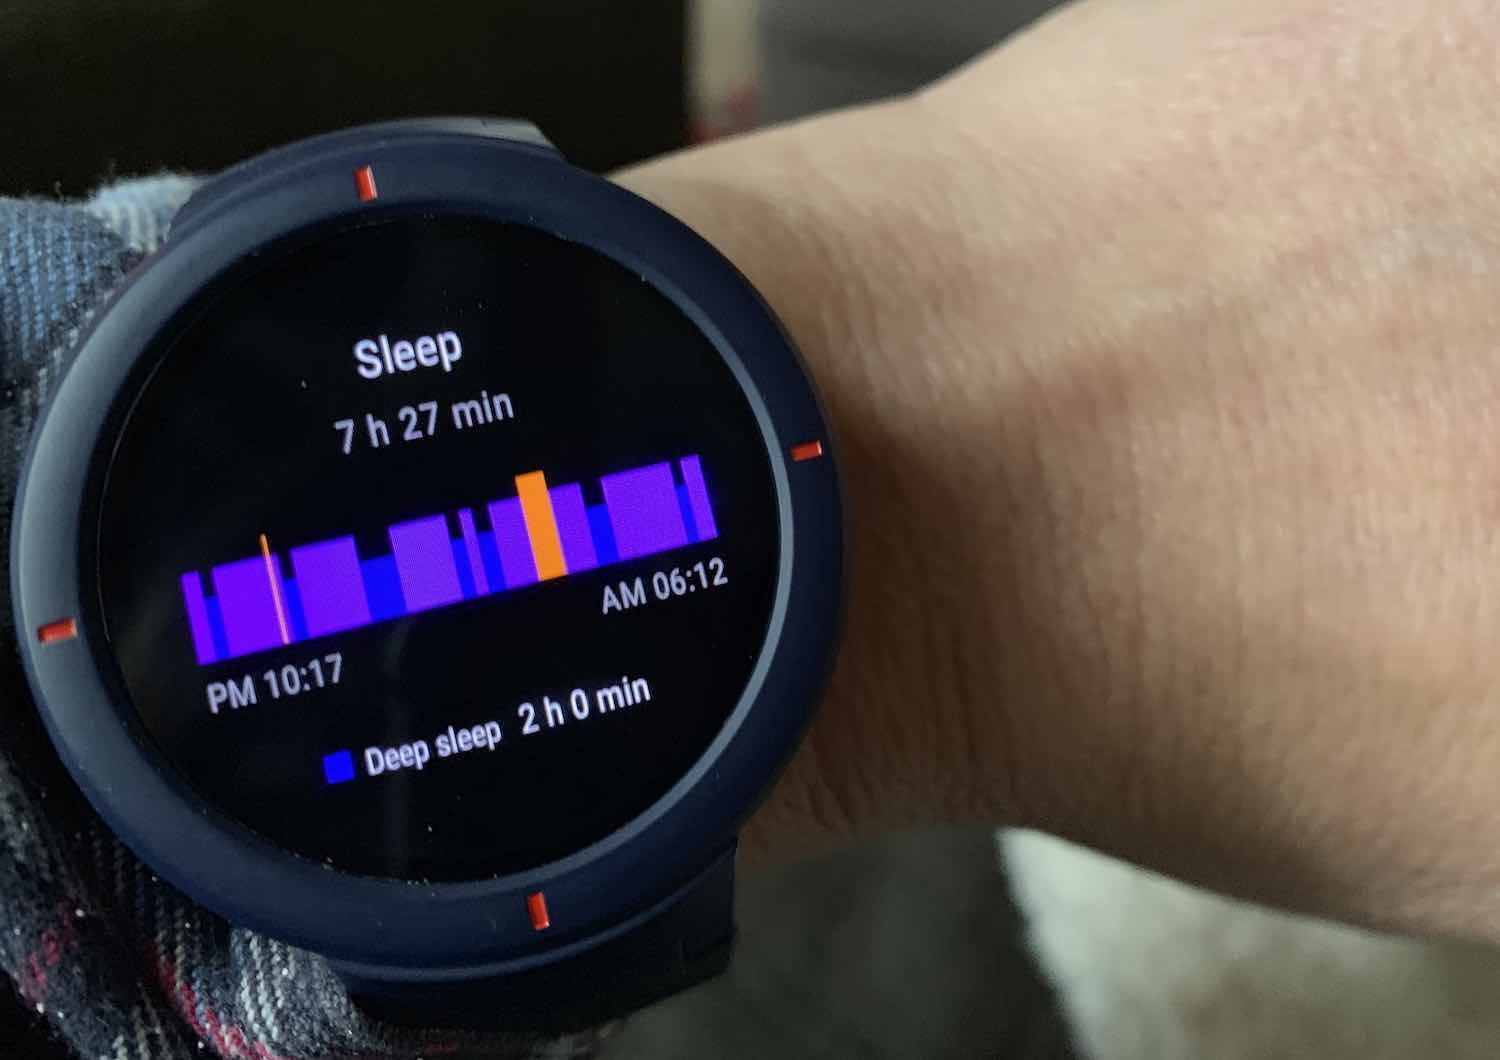 Amazfit Verge Sleep tracking